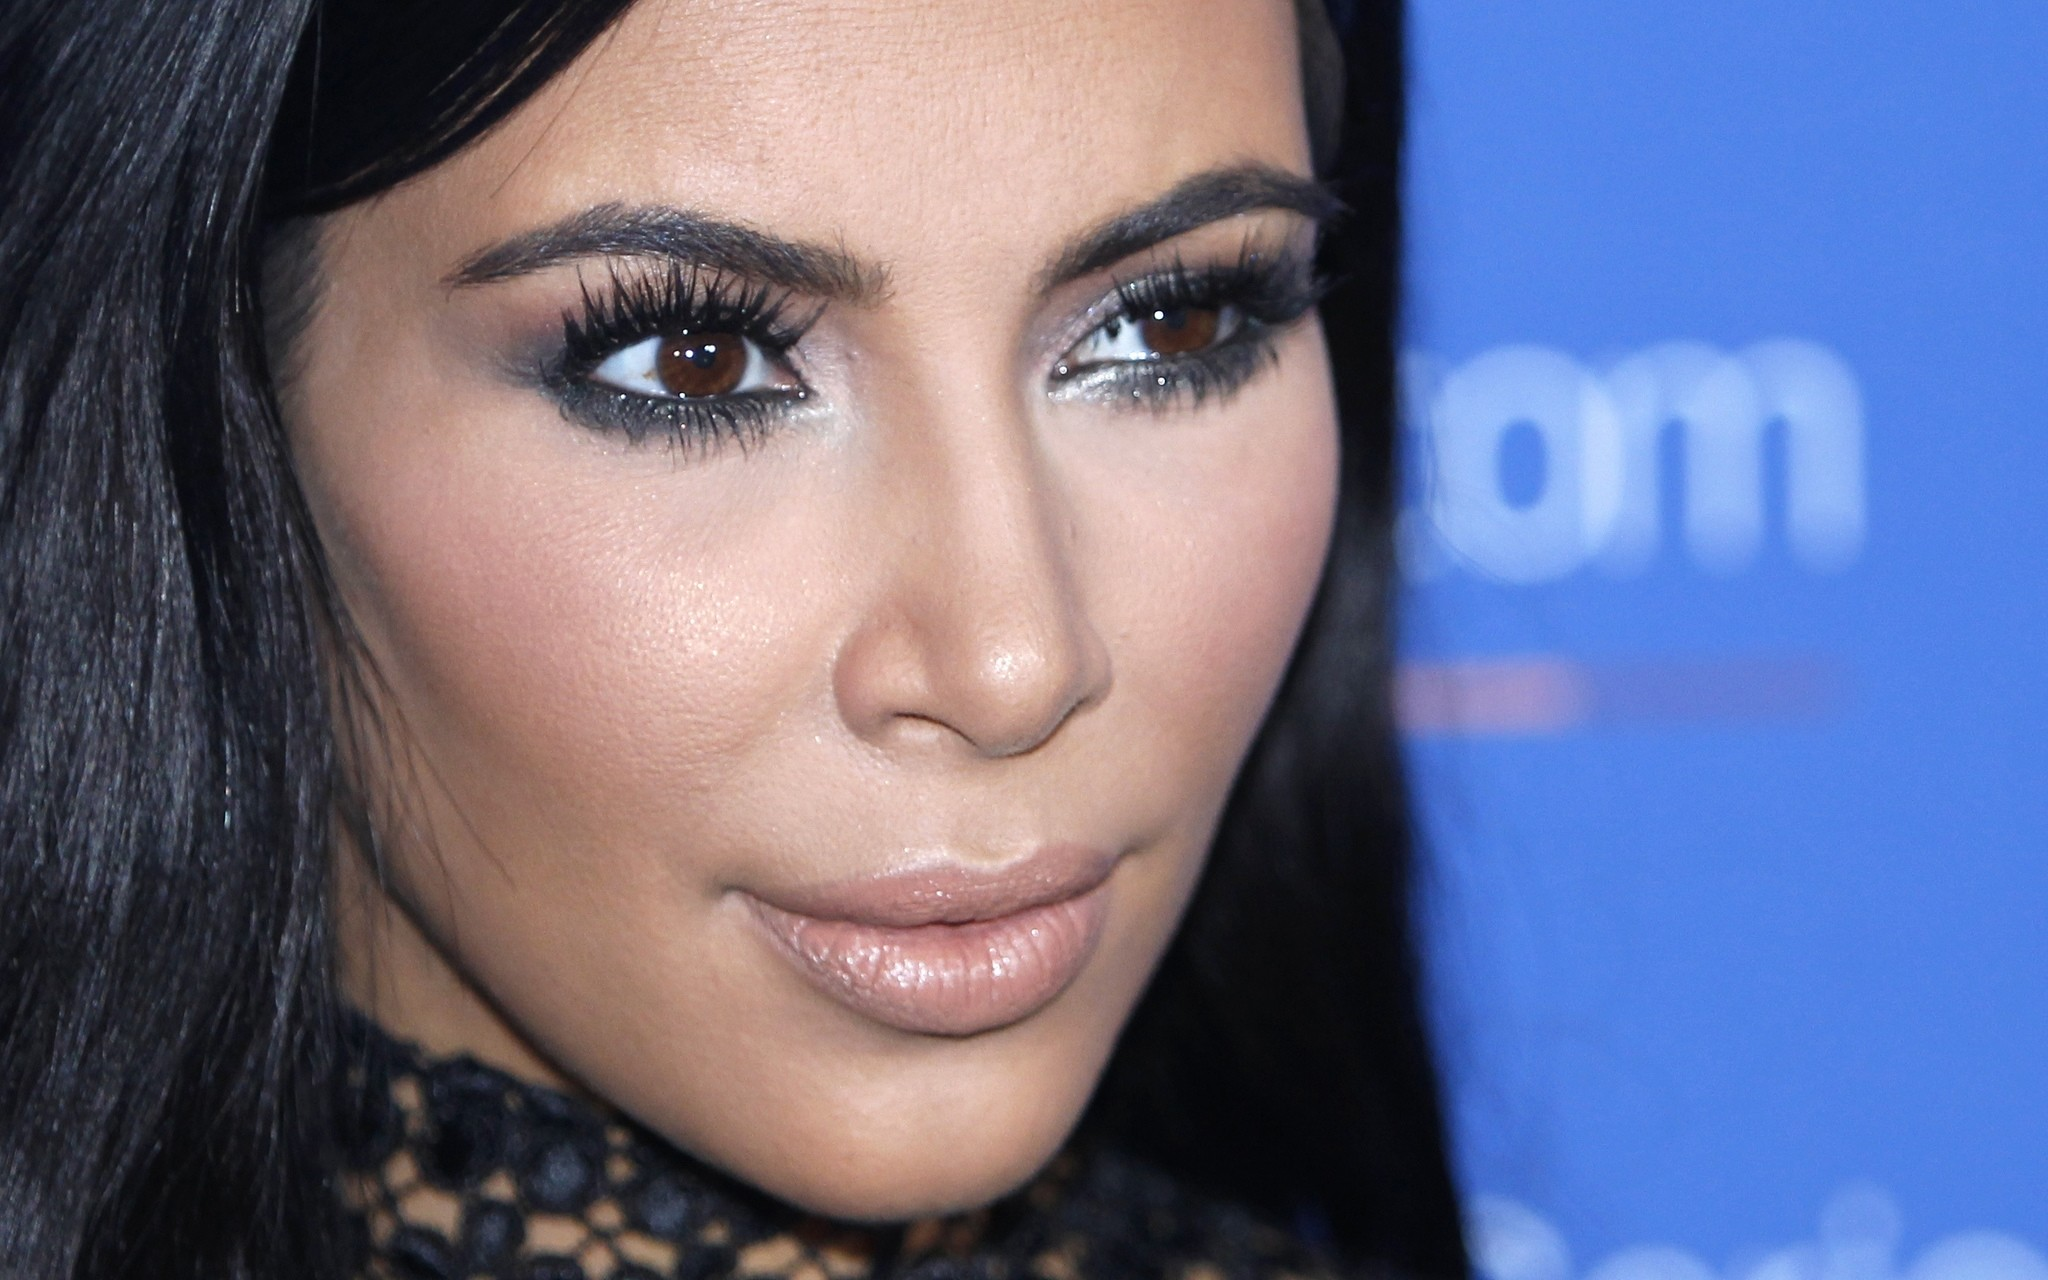 In this June 24, 2015, file photo, Kim Kardashian West poses during a photo call at the Cannes Lions 2015. (AP Photo)